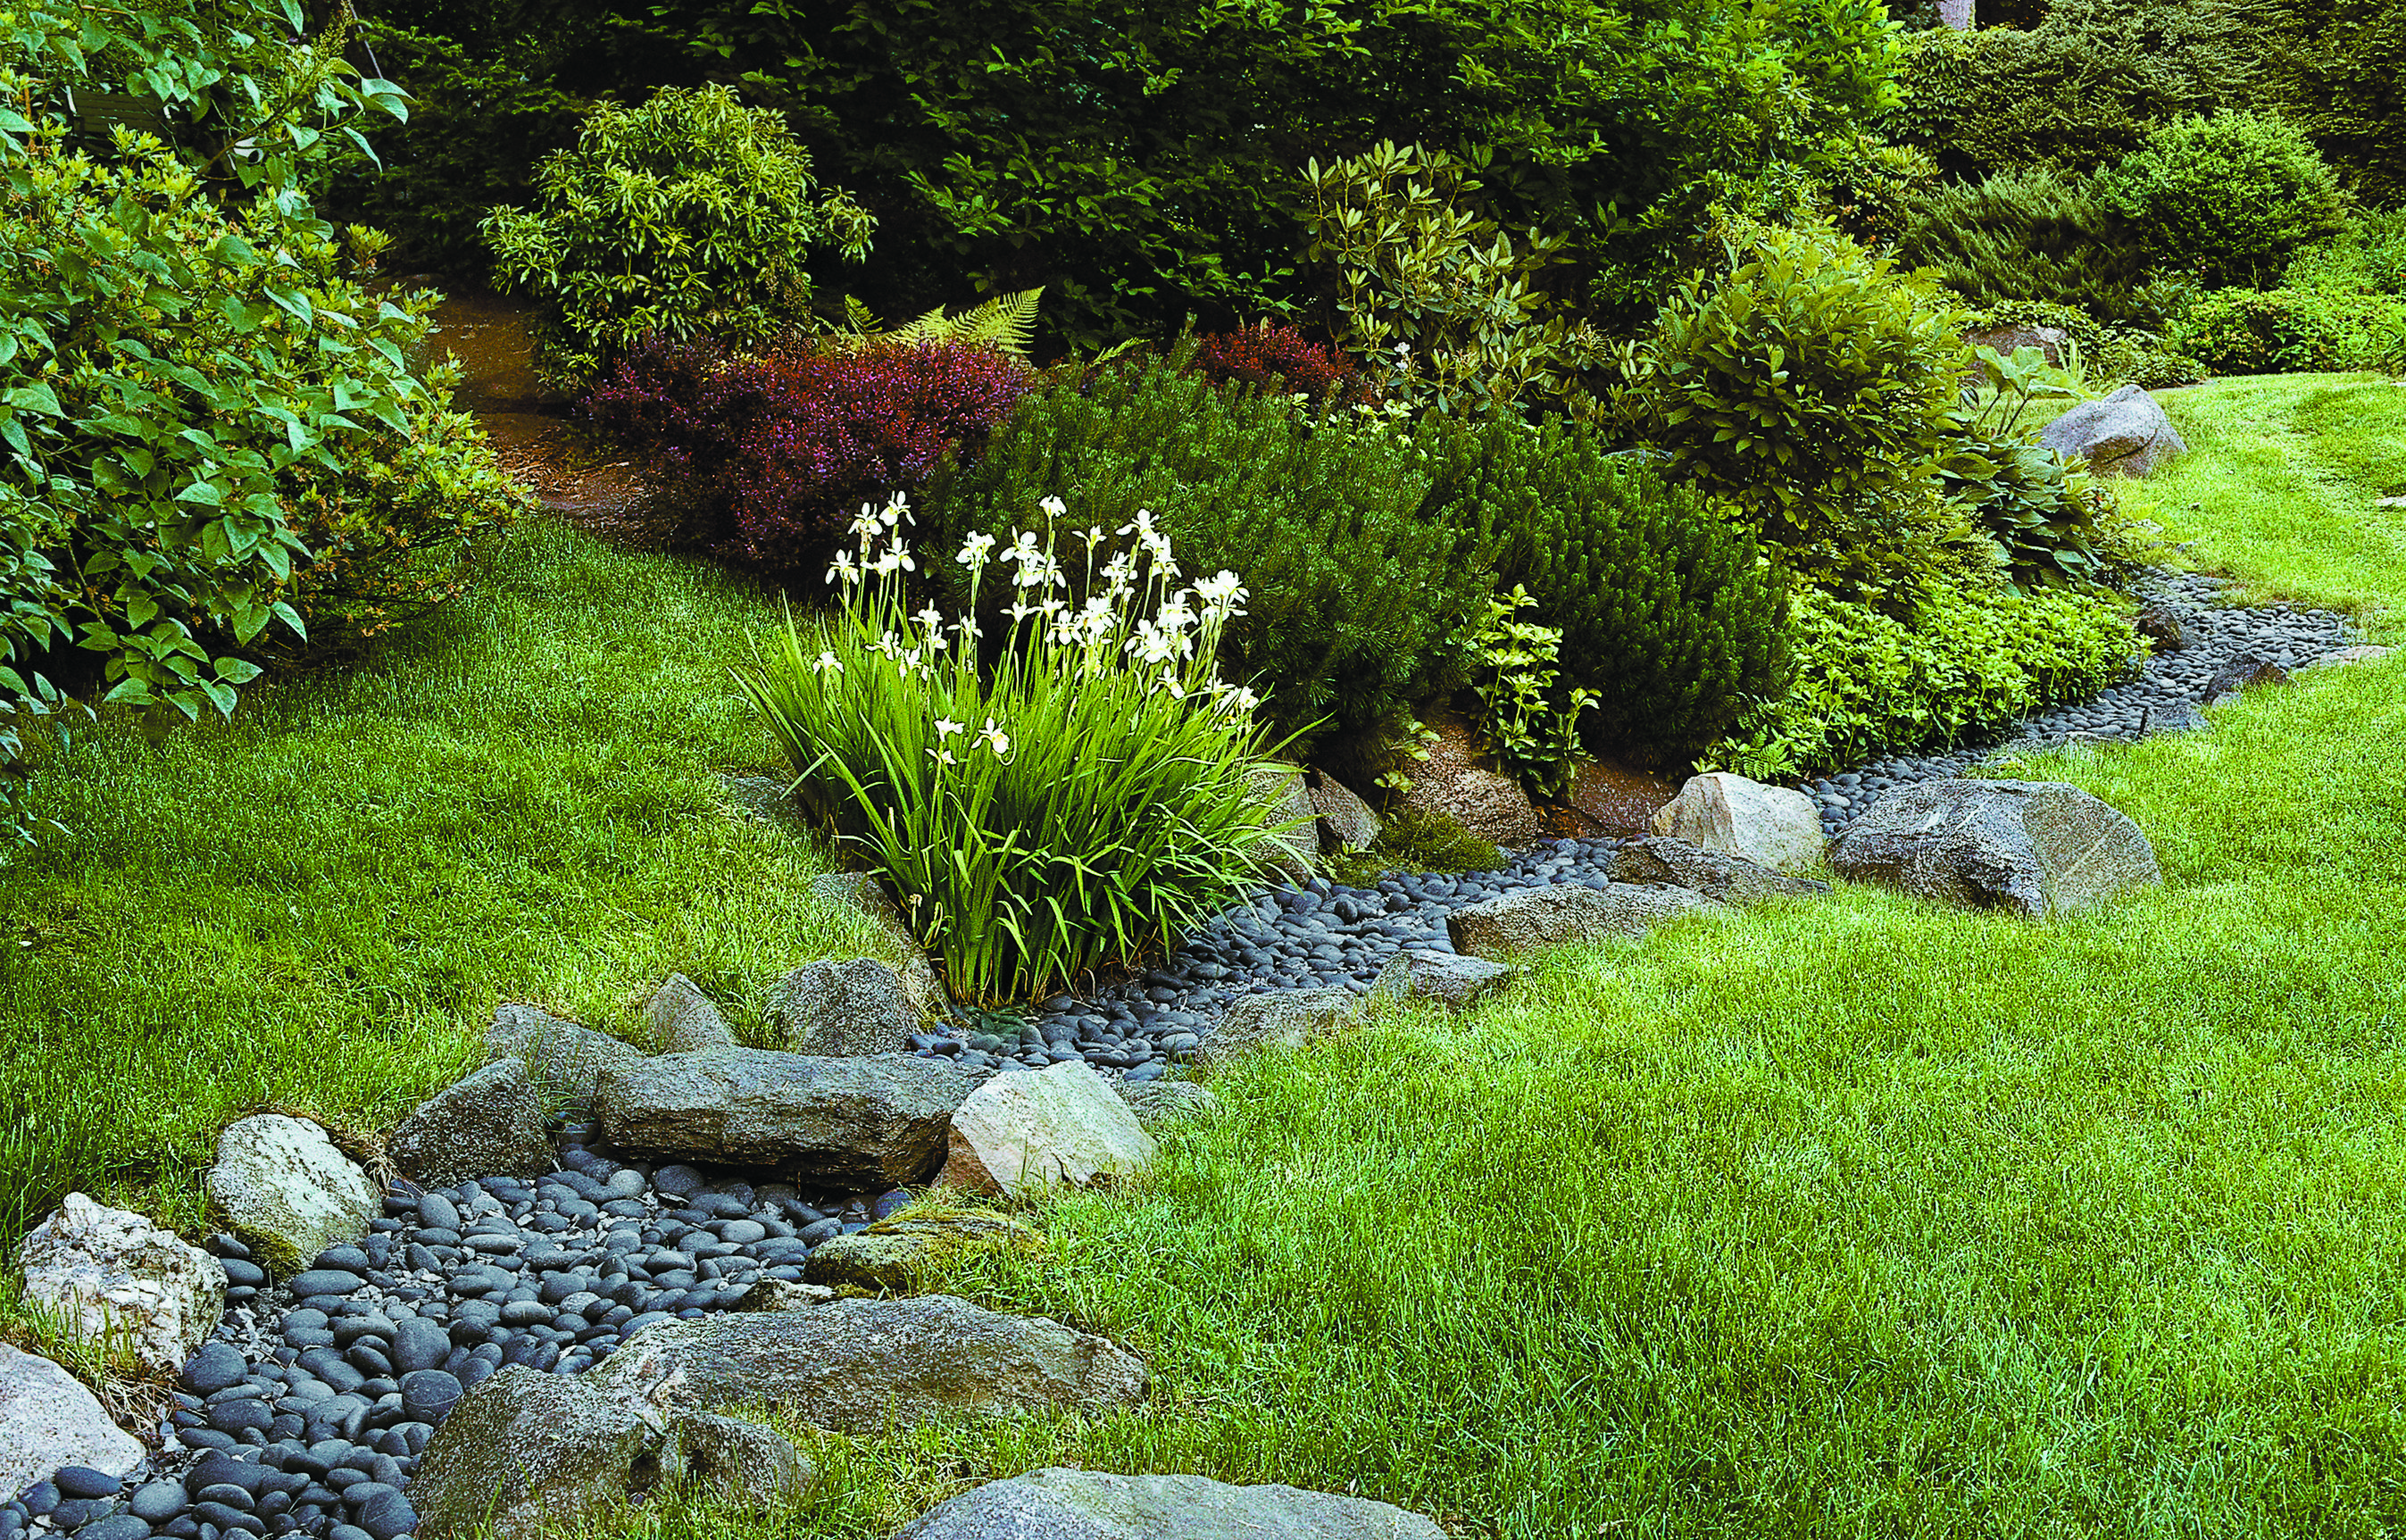 Best Ways to Deal with Storm Water (With images) | Yard ...